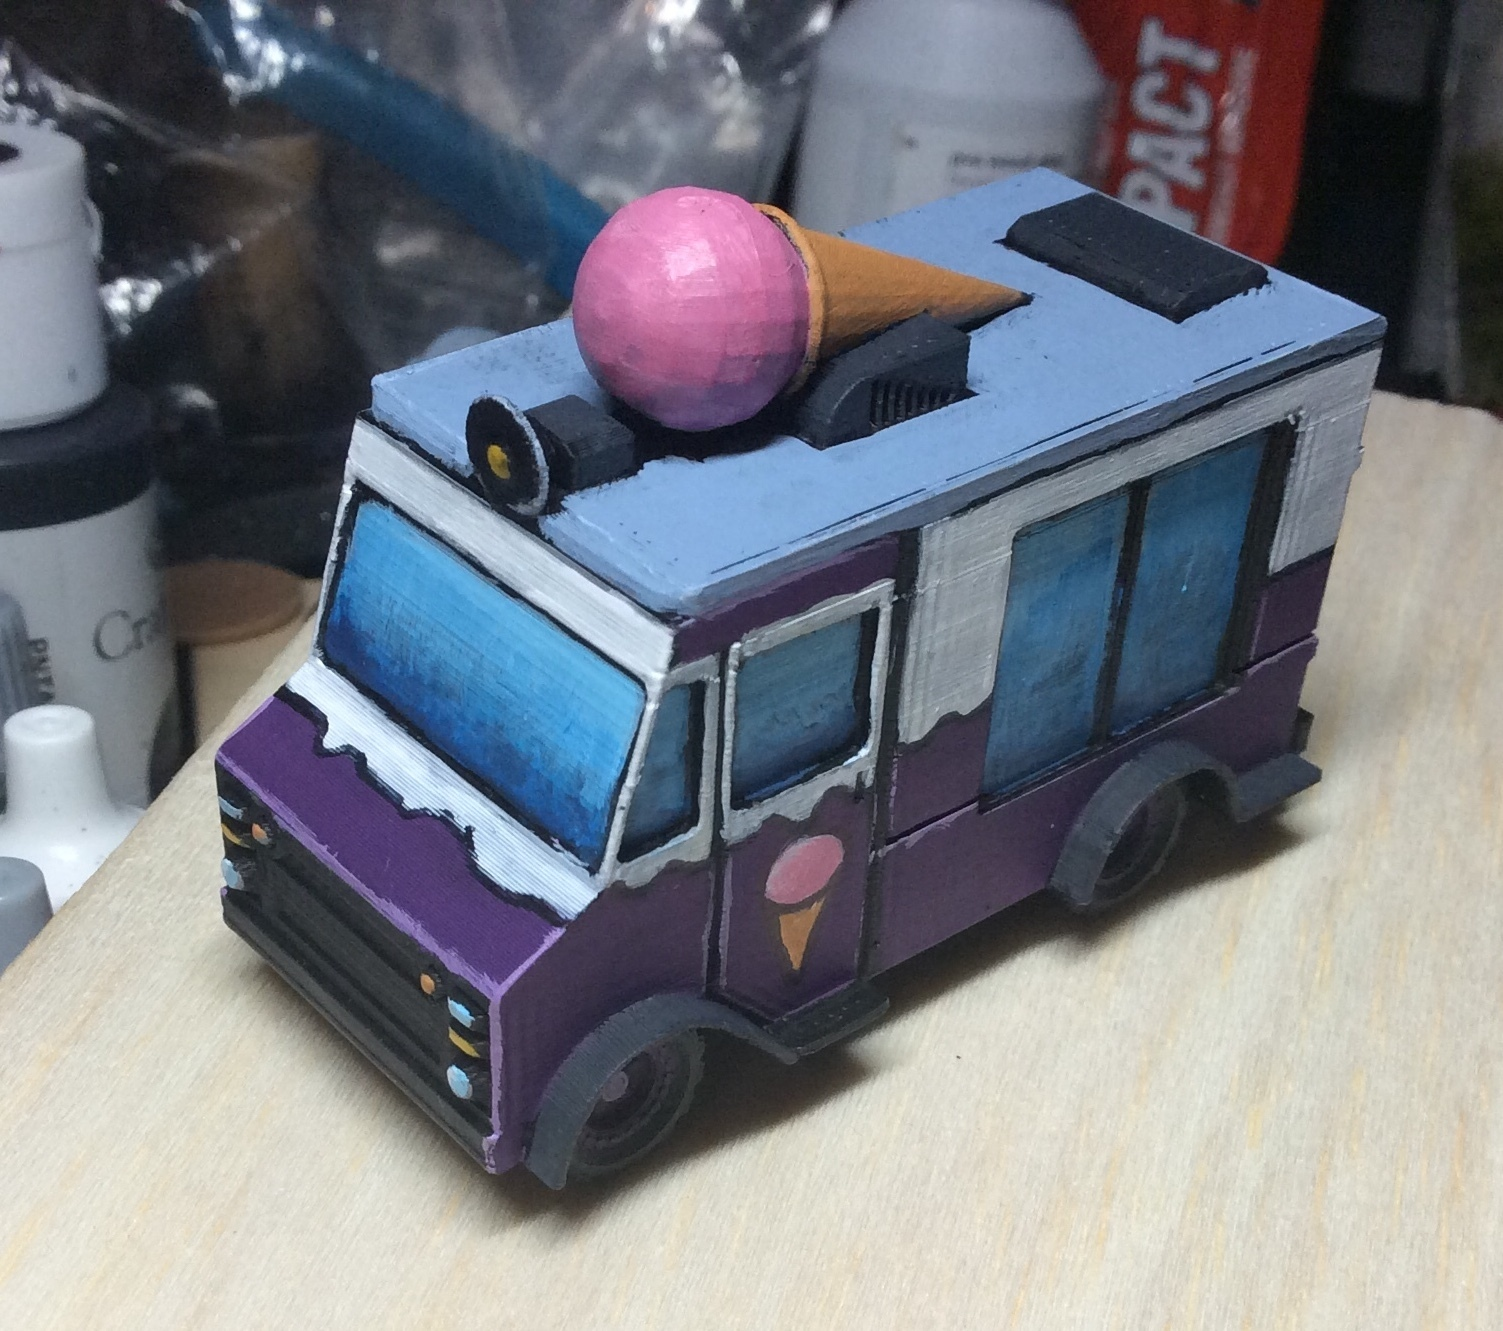 753DA853-7F9B-4F70-B0C8-3C680058A6DA.jpeg Download free STL file ICE CREAM TRUCK/VAN • 3D printing model, Wrecker